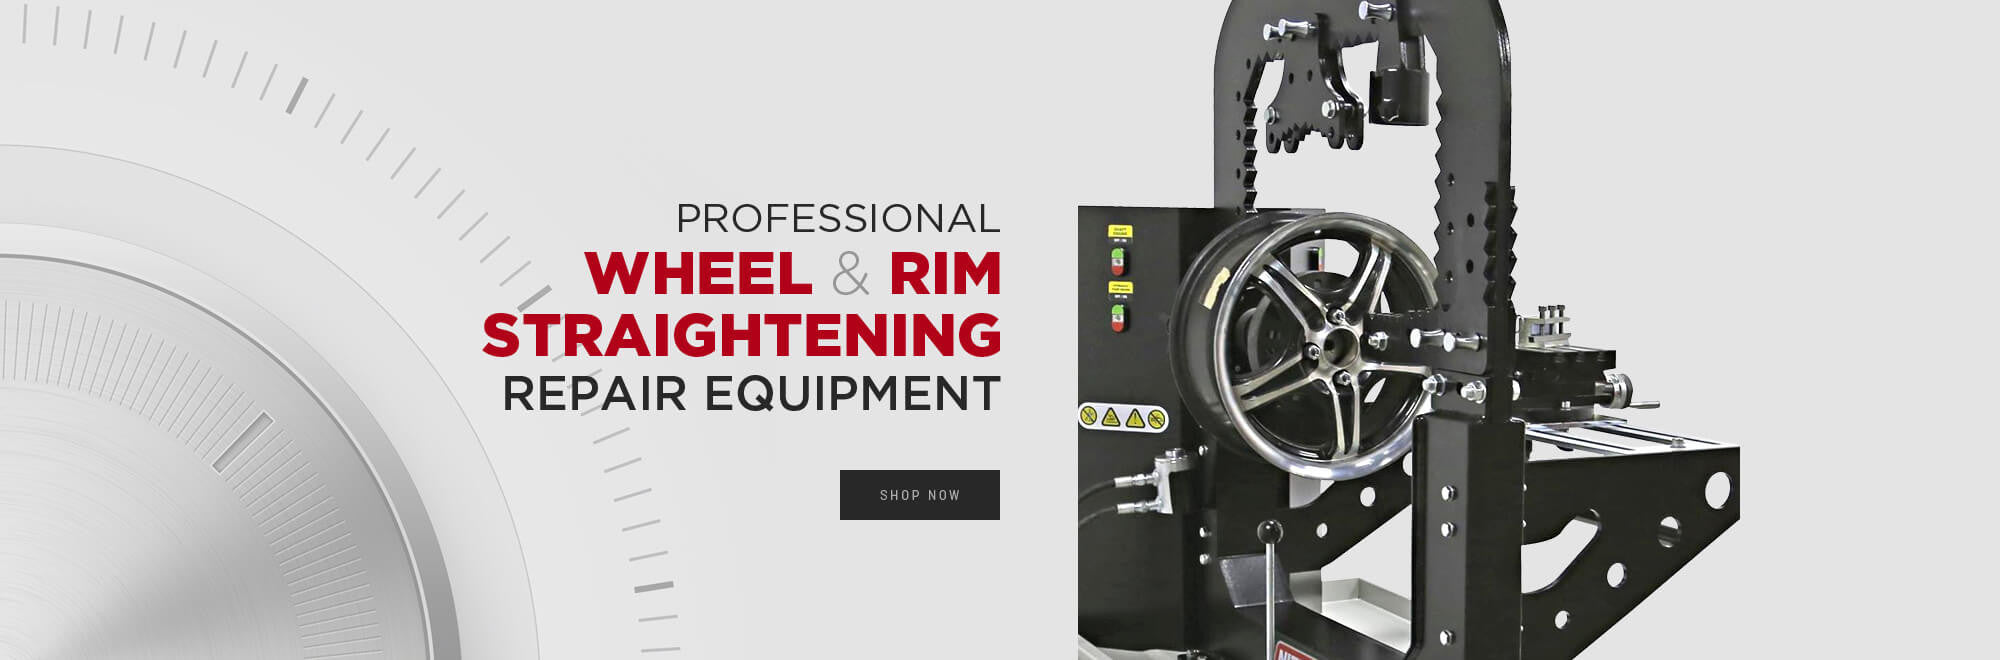 Professional wheel and rim straightening repair equipment